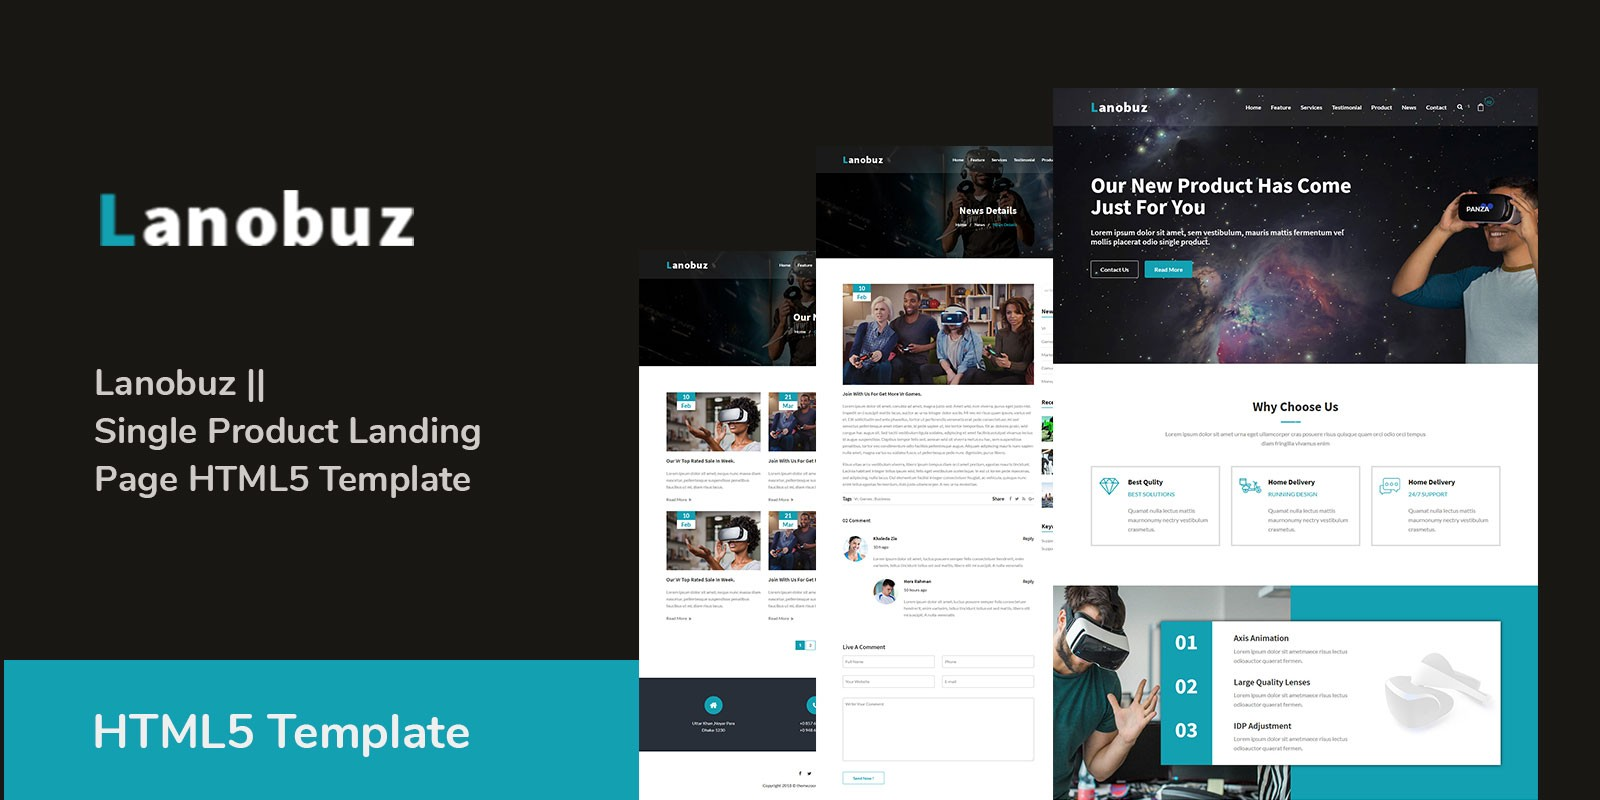 Lanobuz - Single Product Landing Page